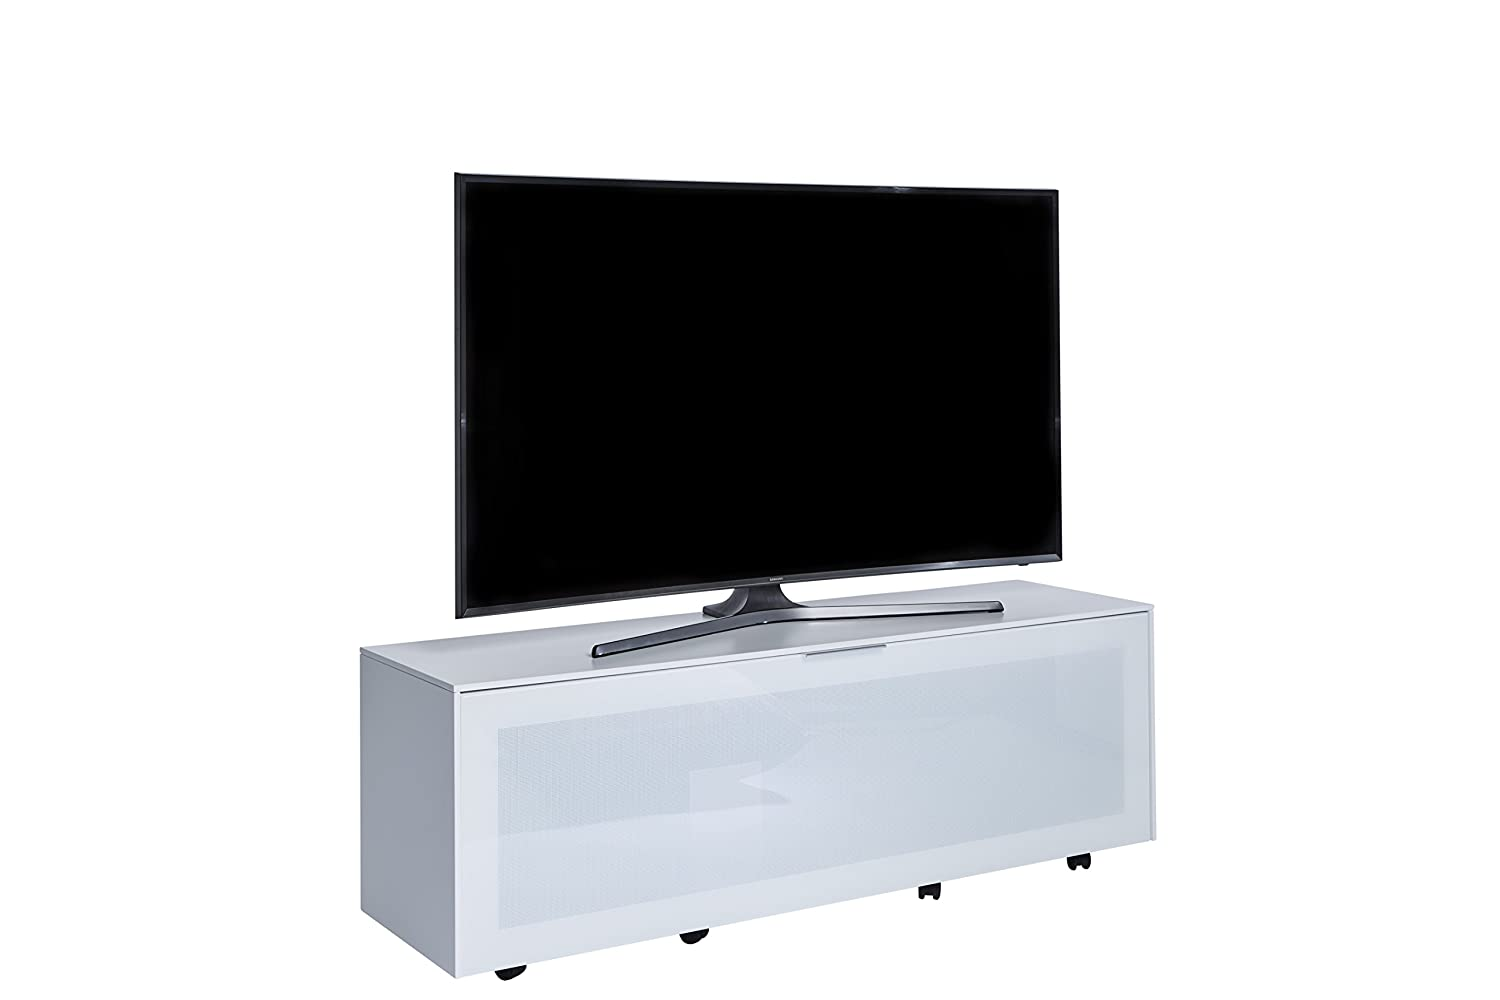 jahnke tv lowboard Jahnke TL 514 Active, Wood, Glass-Matt White, 140 x 40 x 45 cm:  Amazon.co.uk: Kitchen u0026 Home